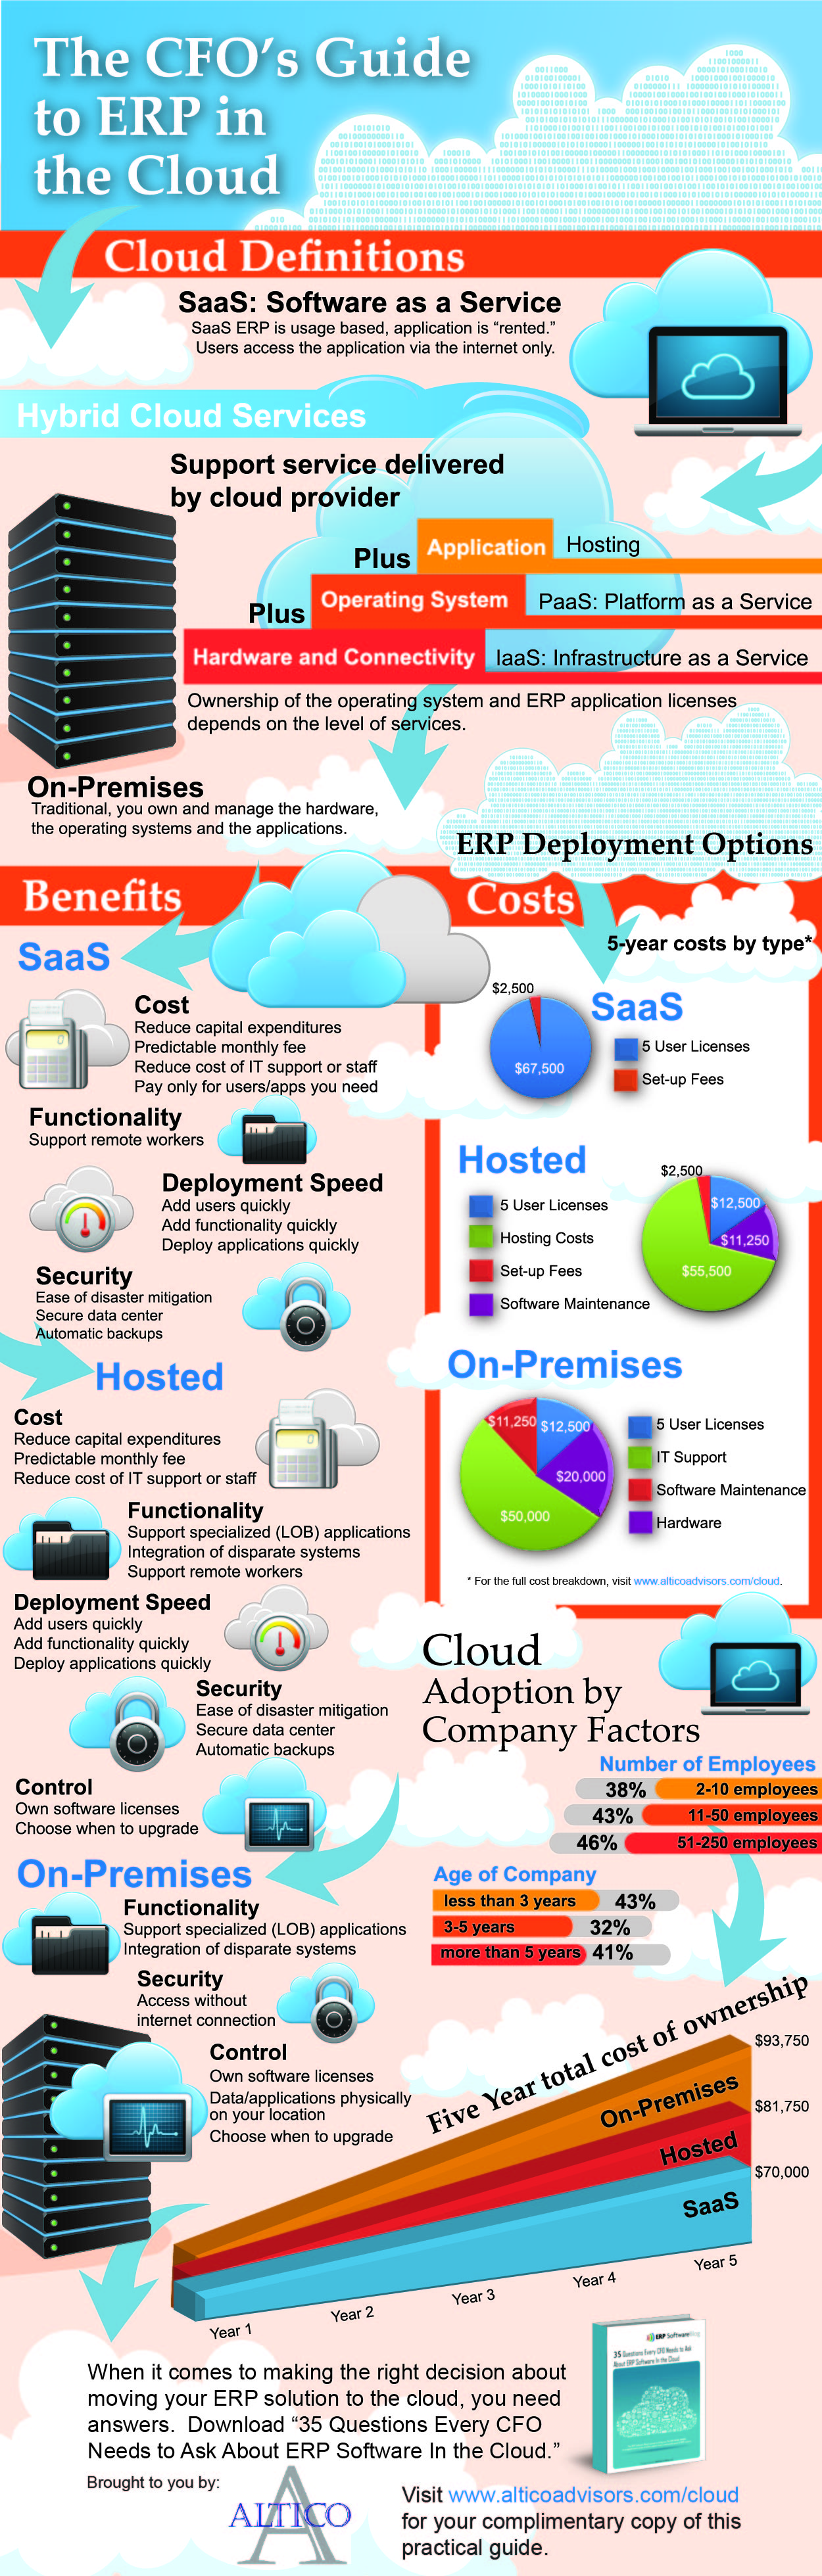 What Factors Determine the Cost of ERP Software?